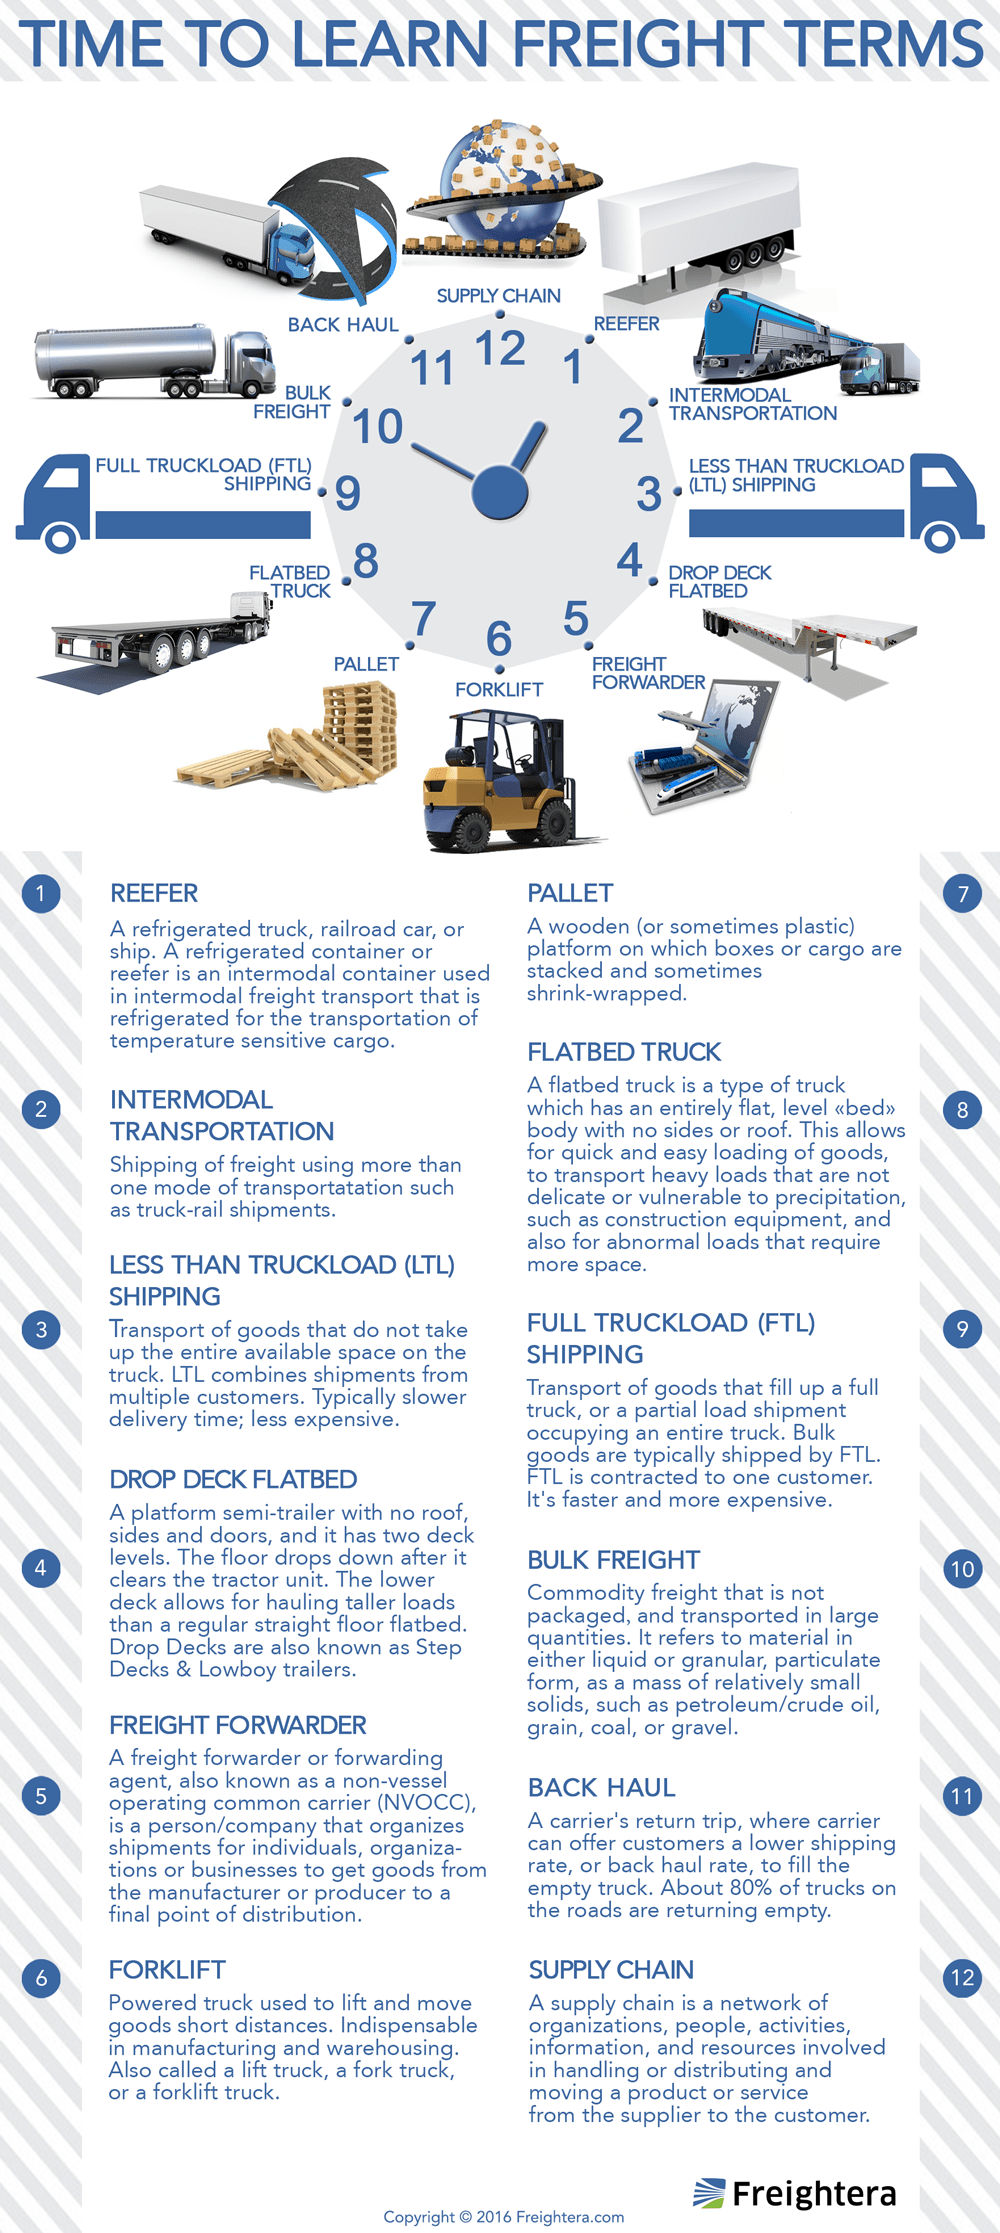 Freight Terms infographic